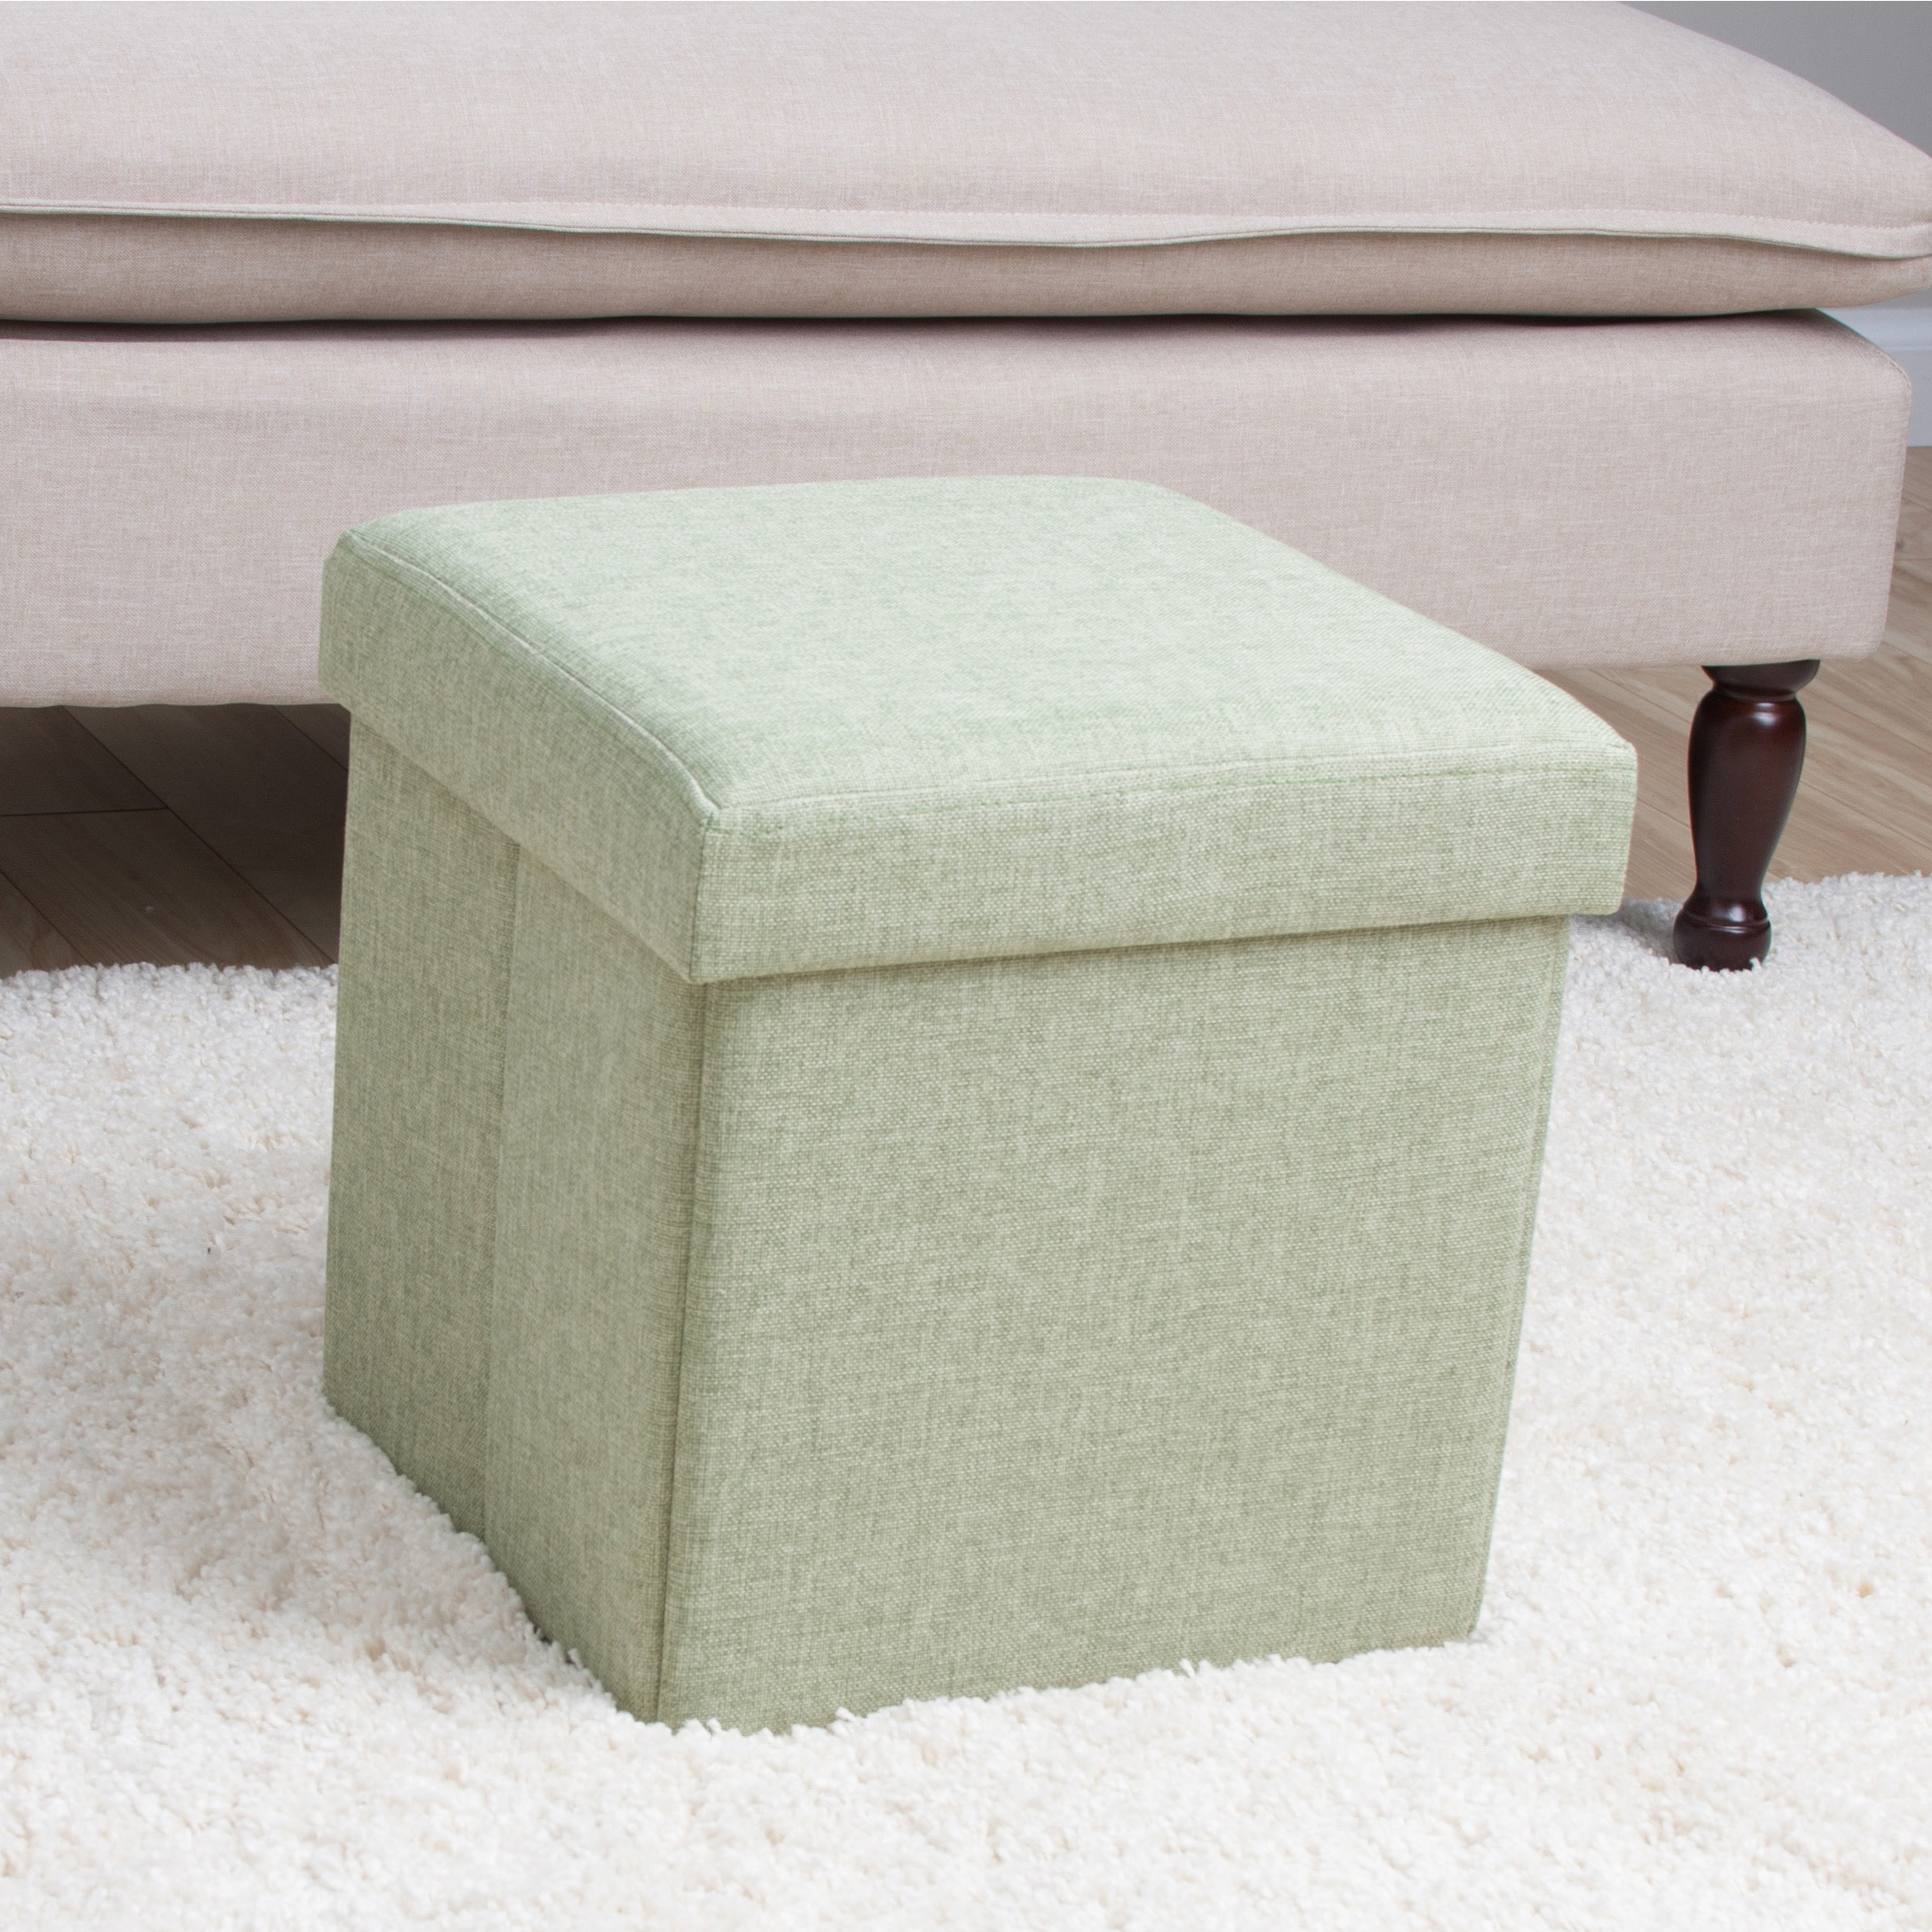 seating ottomans fenning dering hall metal transitional modern stools mid furniture ottoman square century leather poufs brass lawson